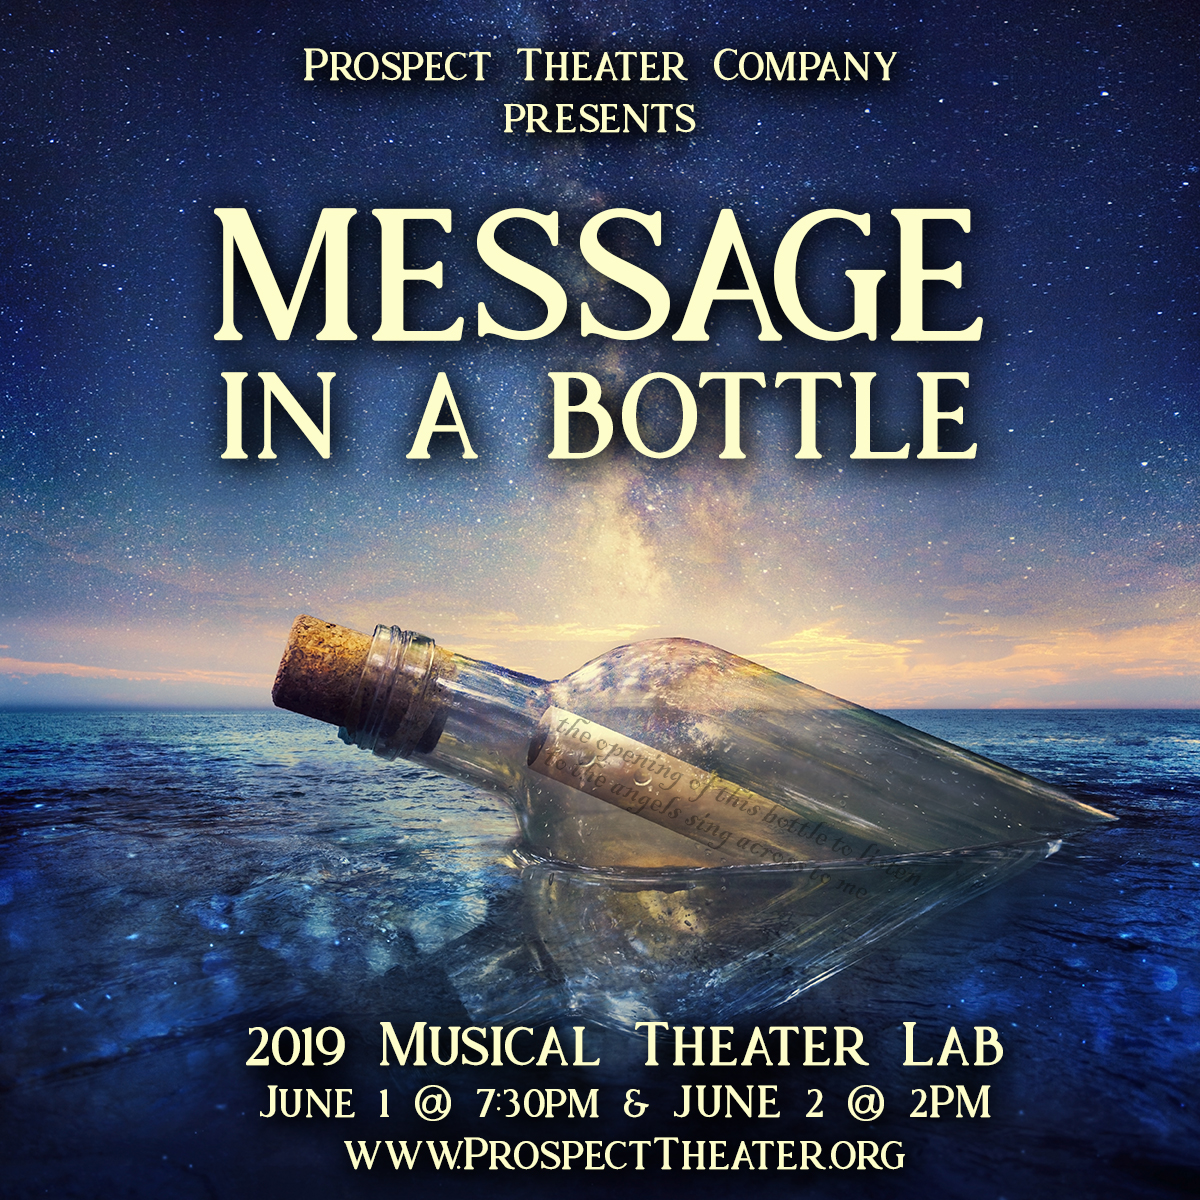 prospect theater company MESSAGE IN A BOTTLE.jpg